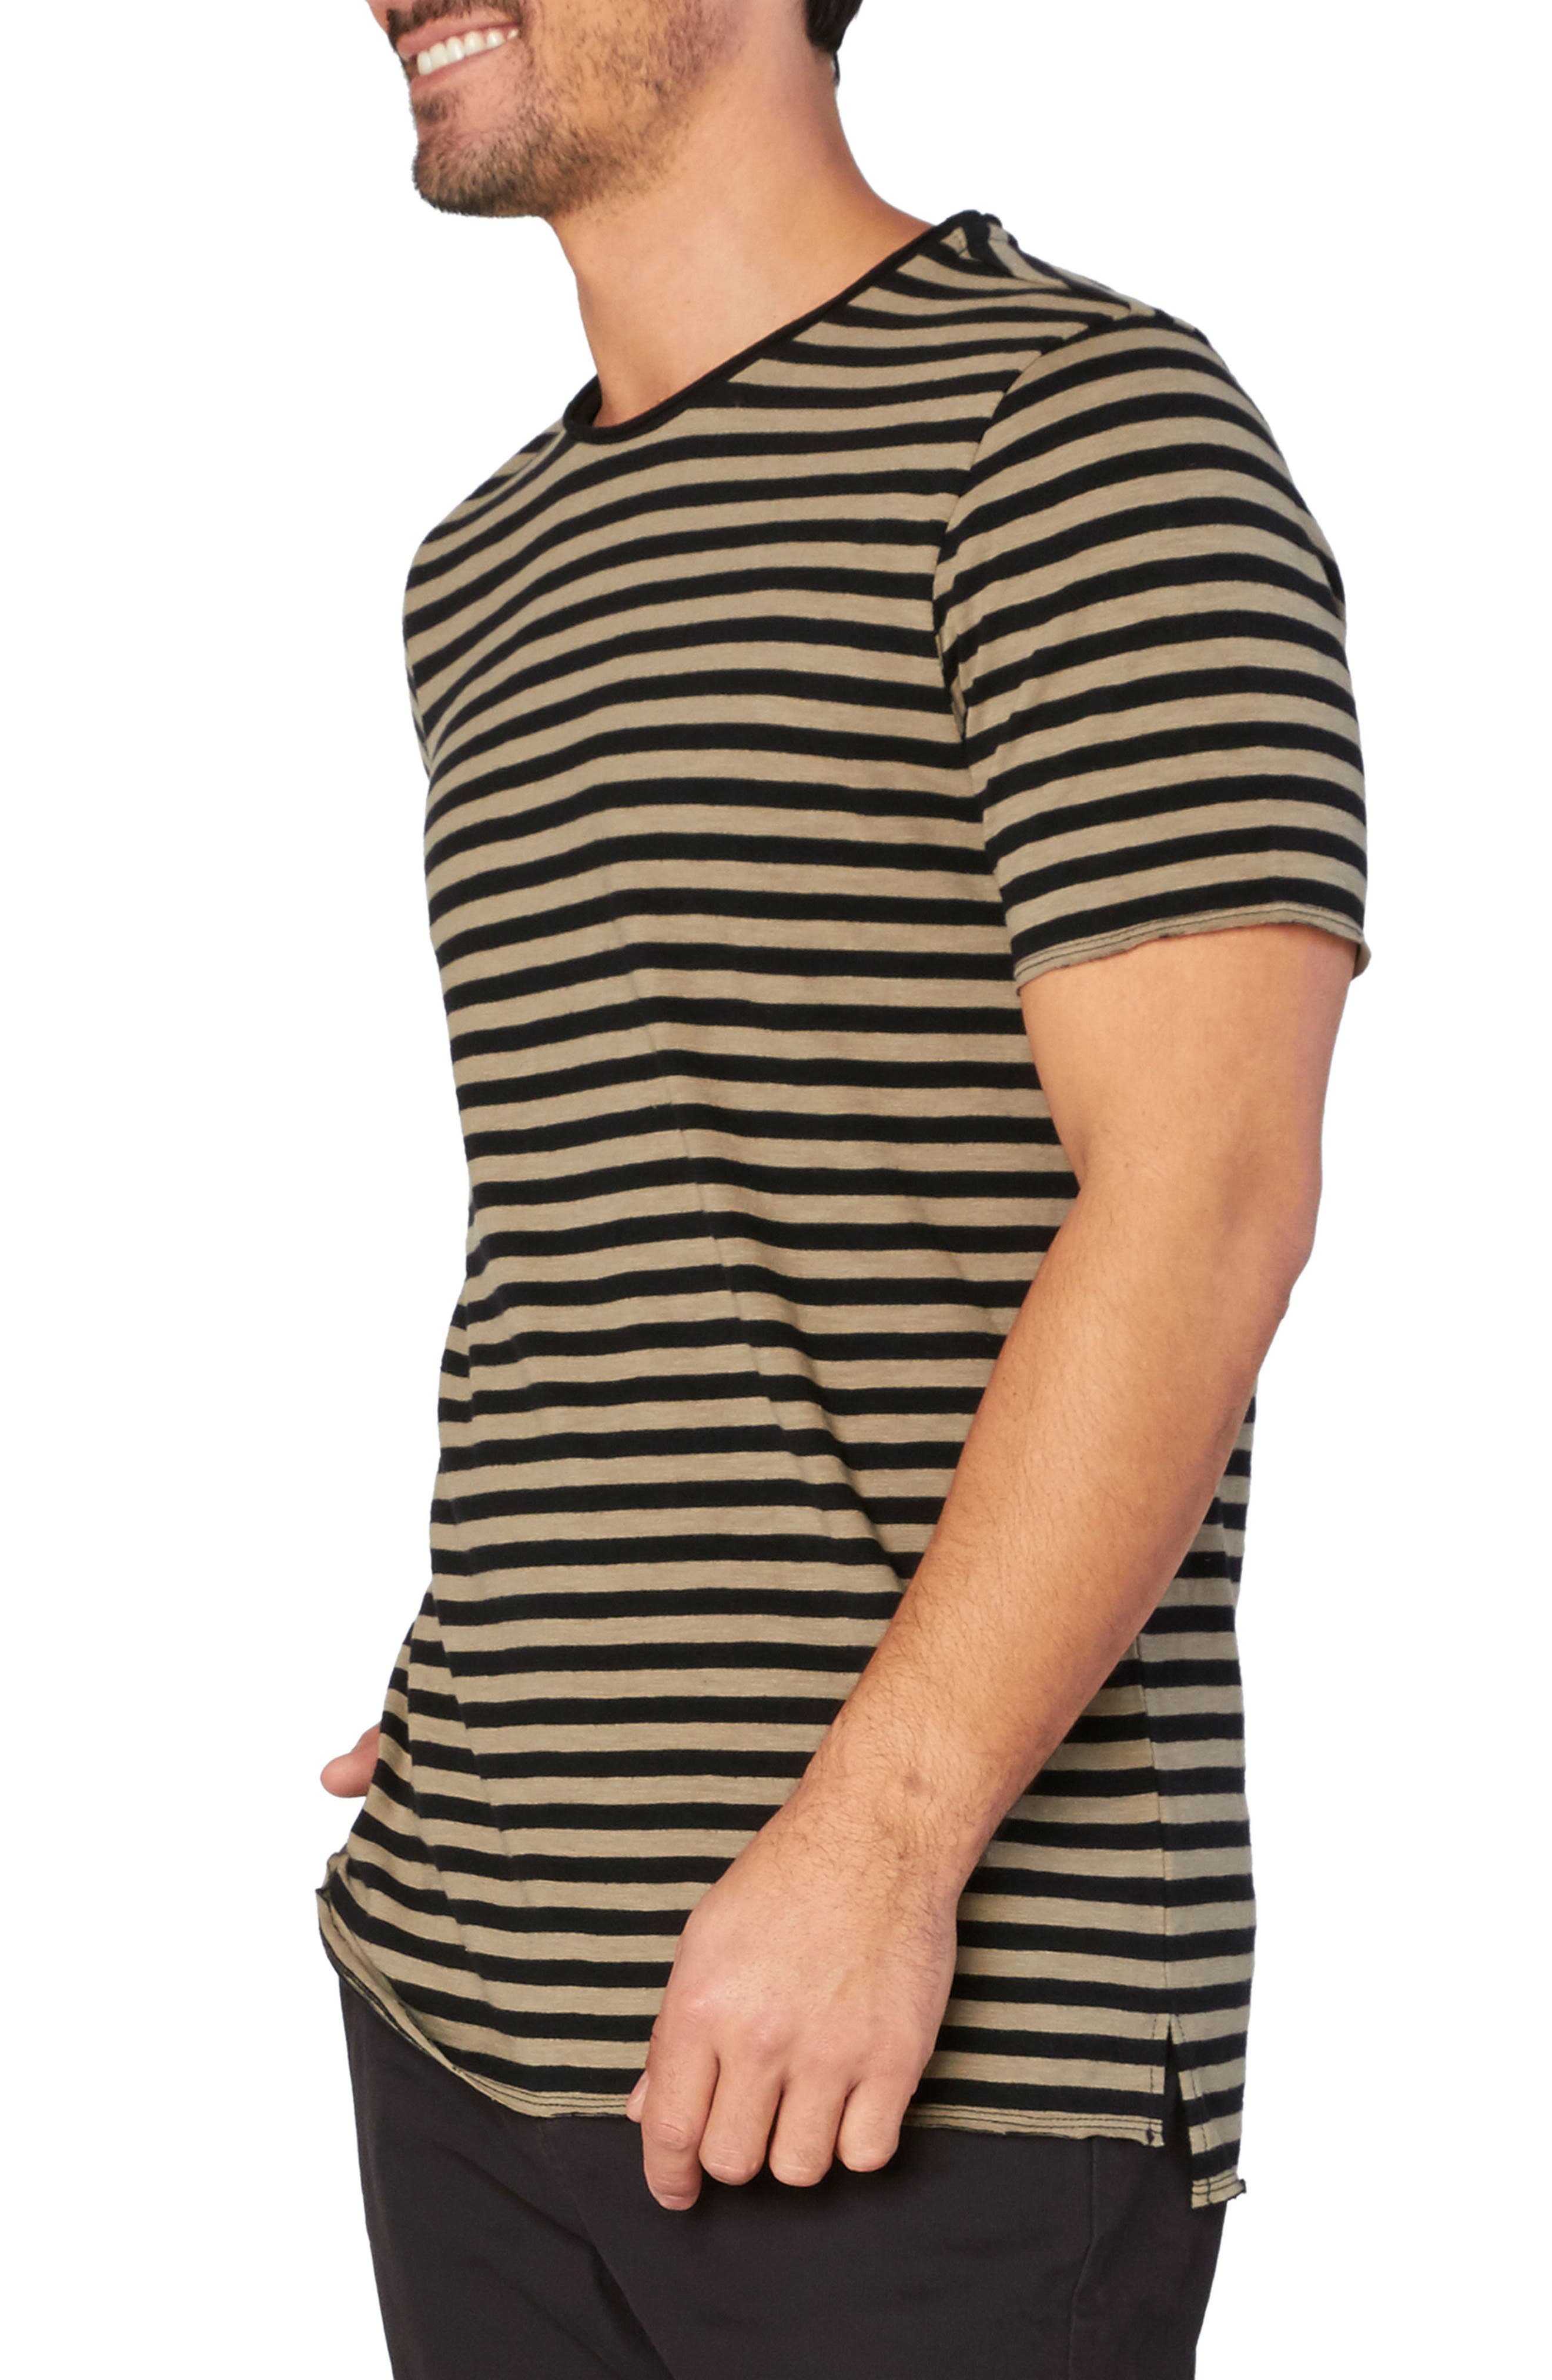 Kane Slub Stripe T-Shirt,                             Alternate thumbnail 3, color,                             Brindle